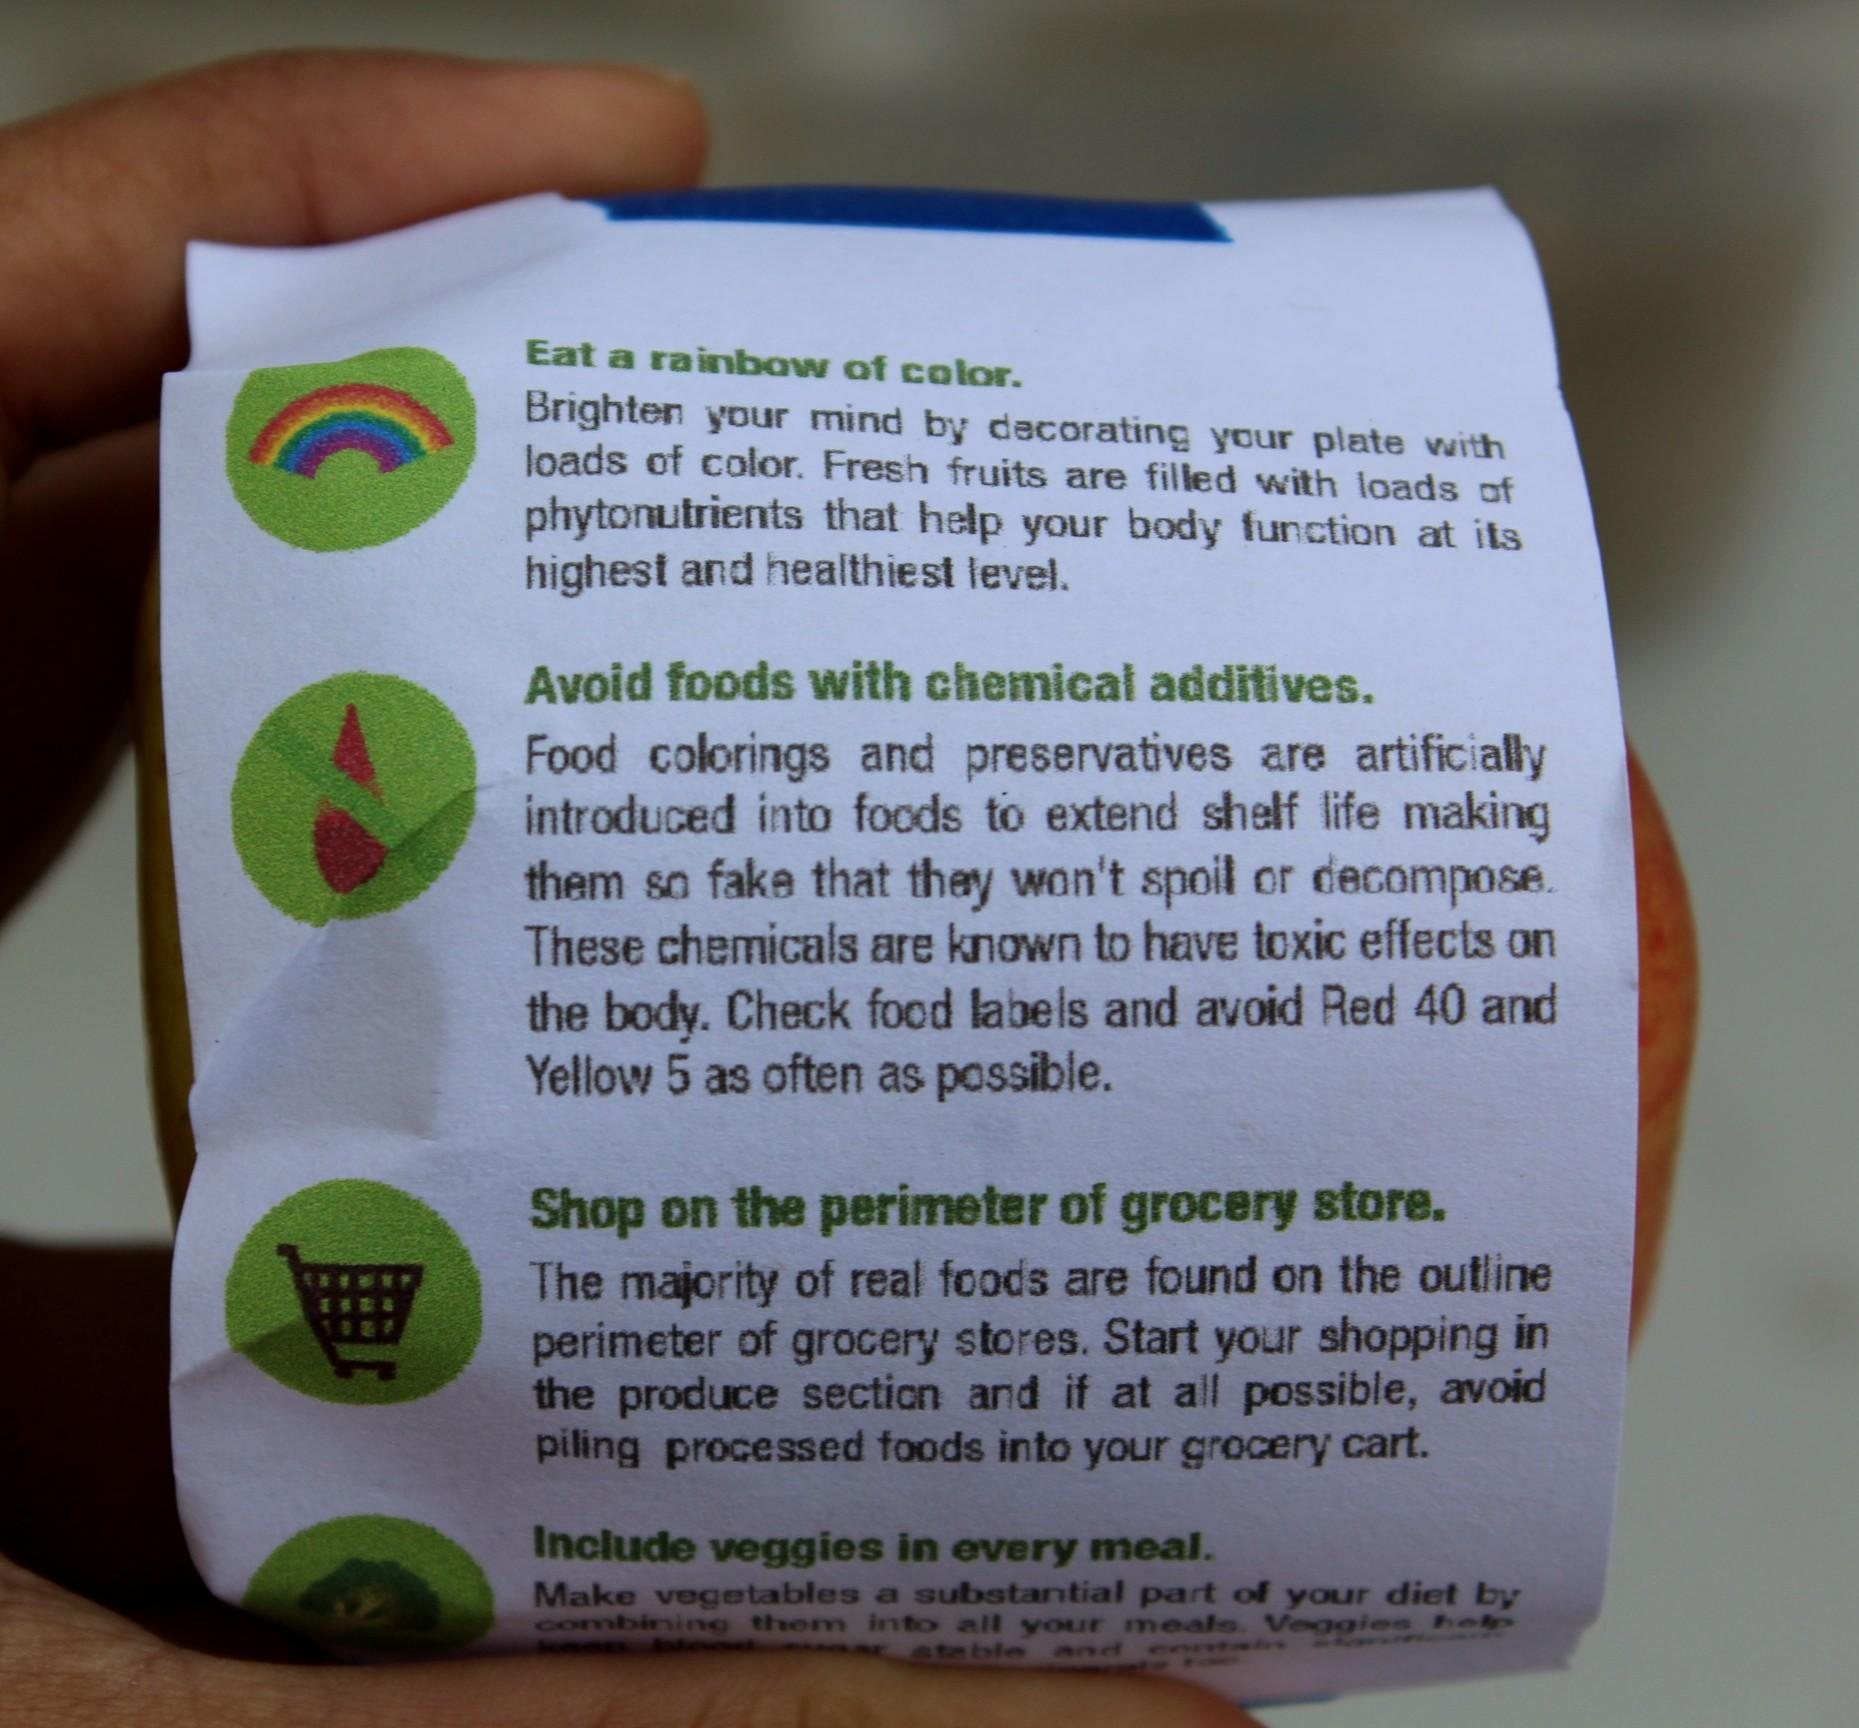 Apples+with+a+variety+of+helpful+nutrition+tips+taped+to+them+were+handed+out+to+students+at+lunch+in+the+quad.